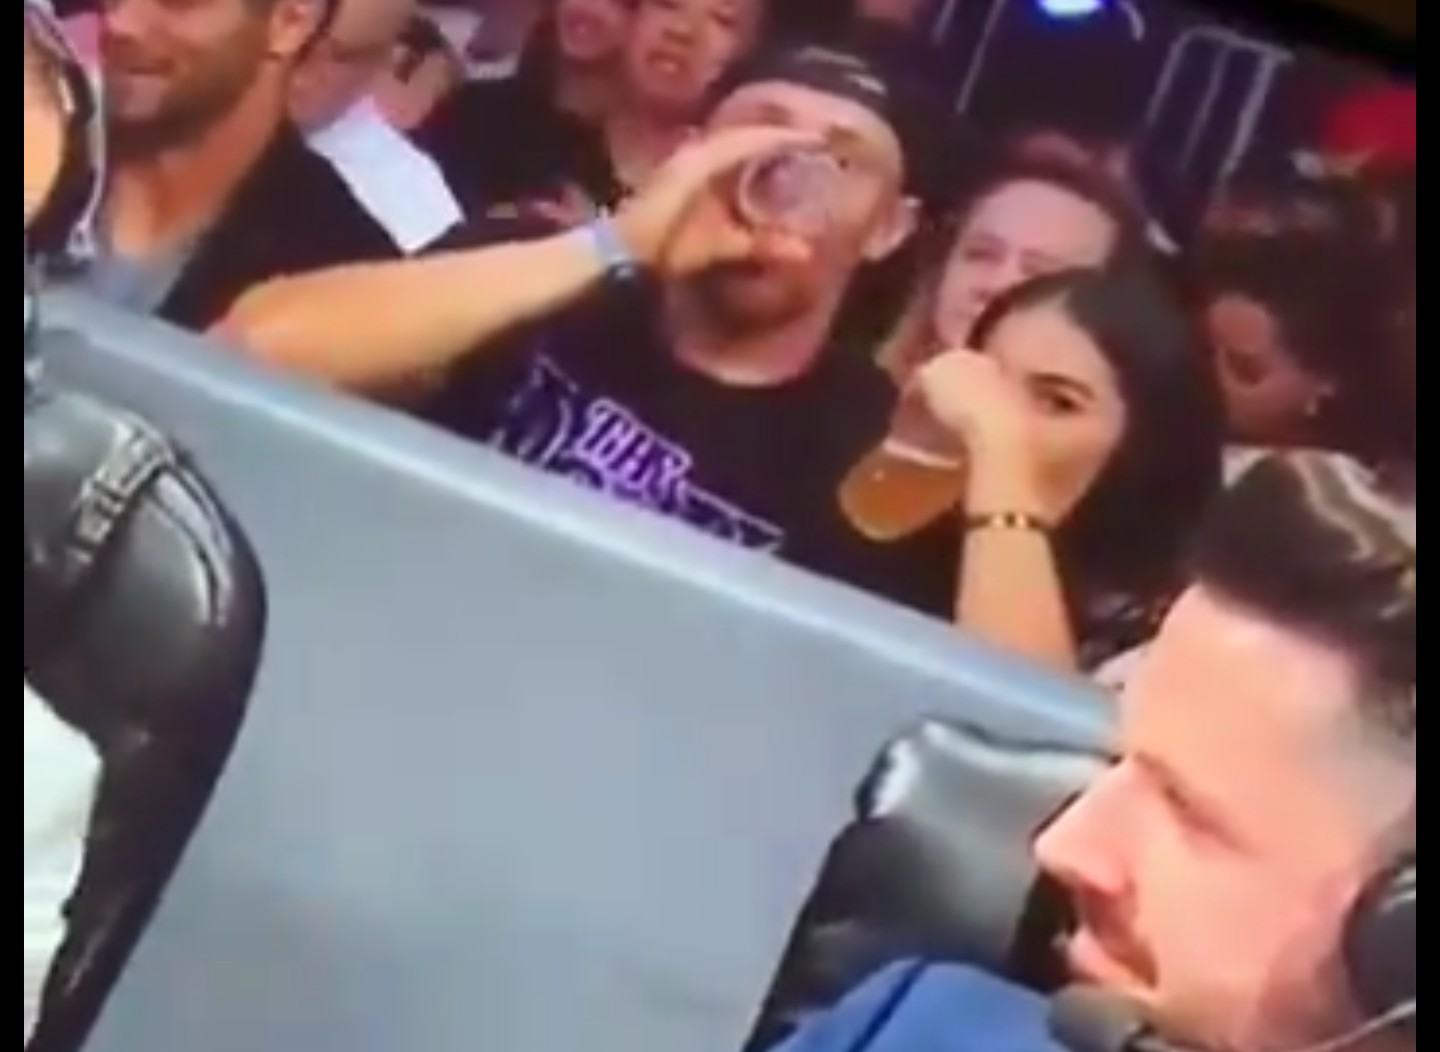 George Kittle Spotted Chugging Beer at WWE Smackdown